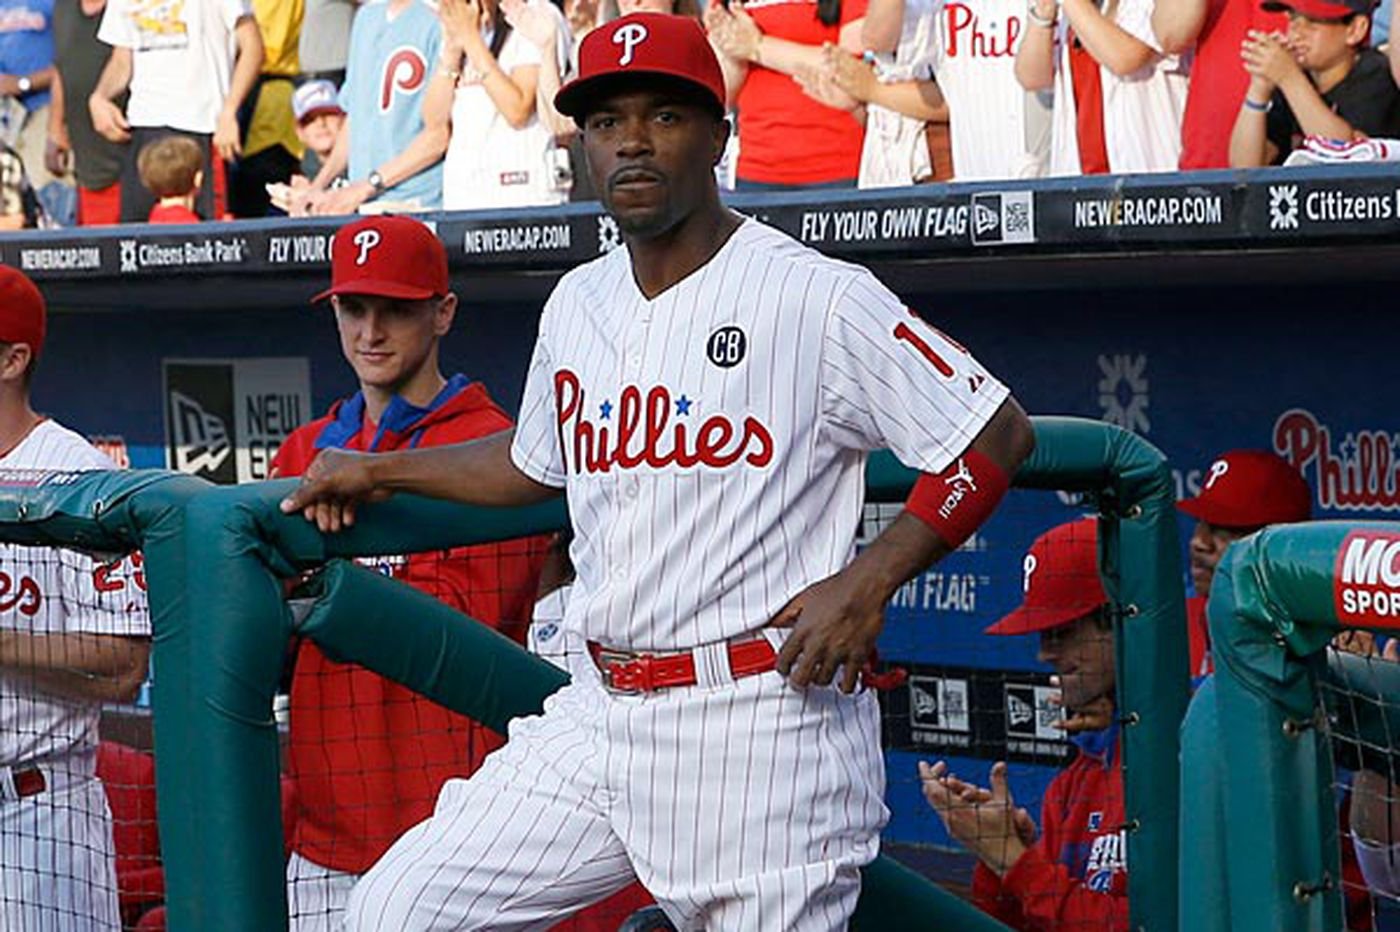 Rollins has made a lasting impression with the Phillies